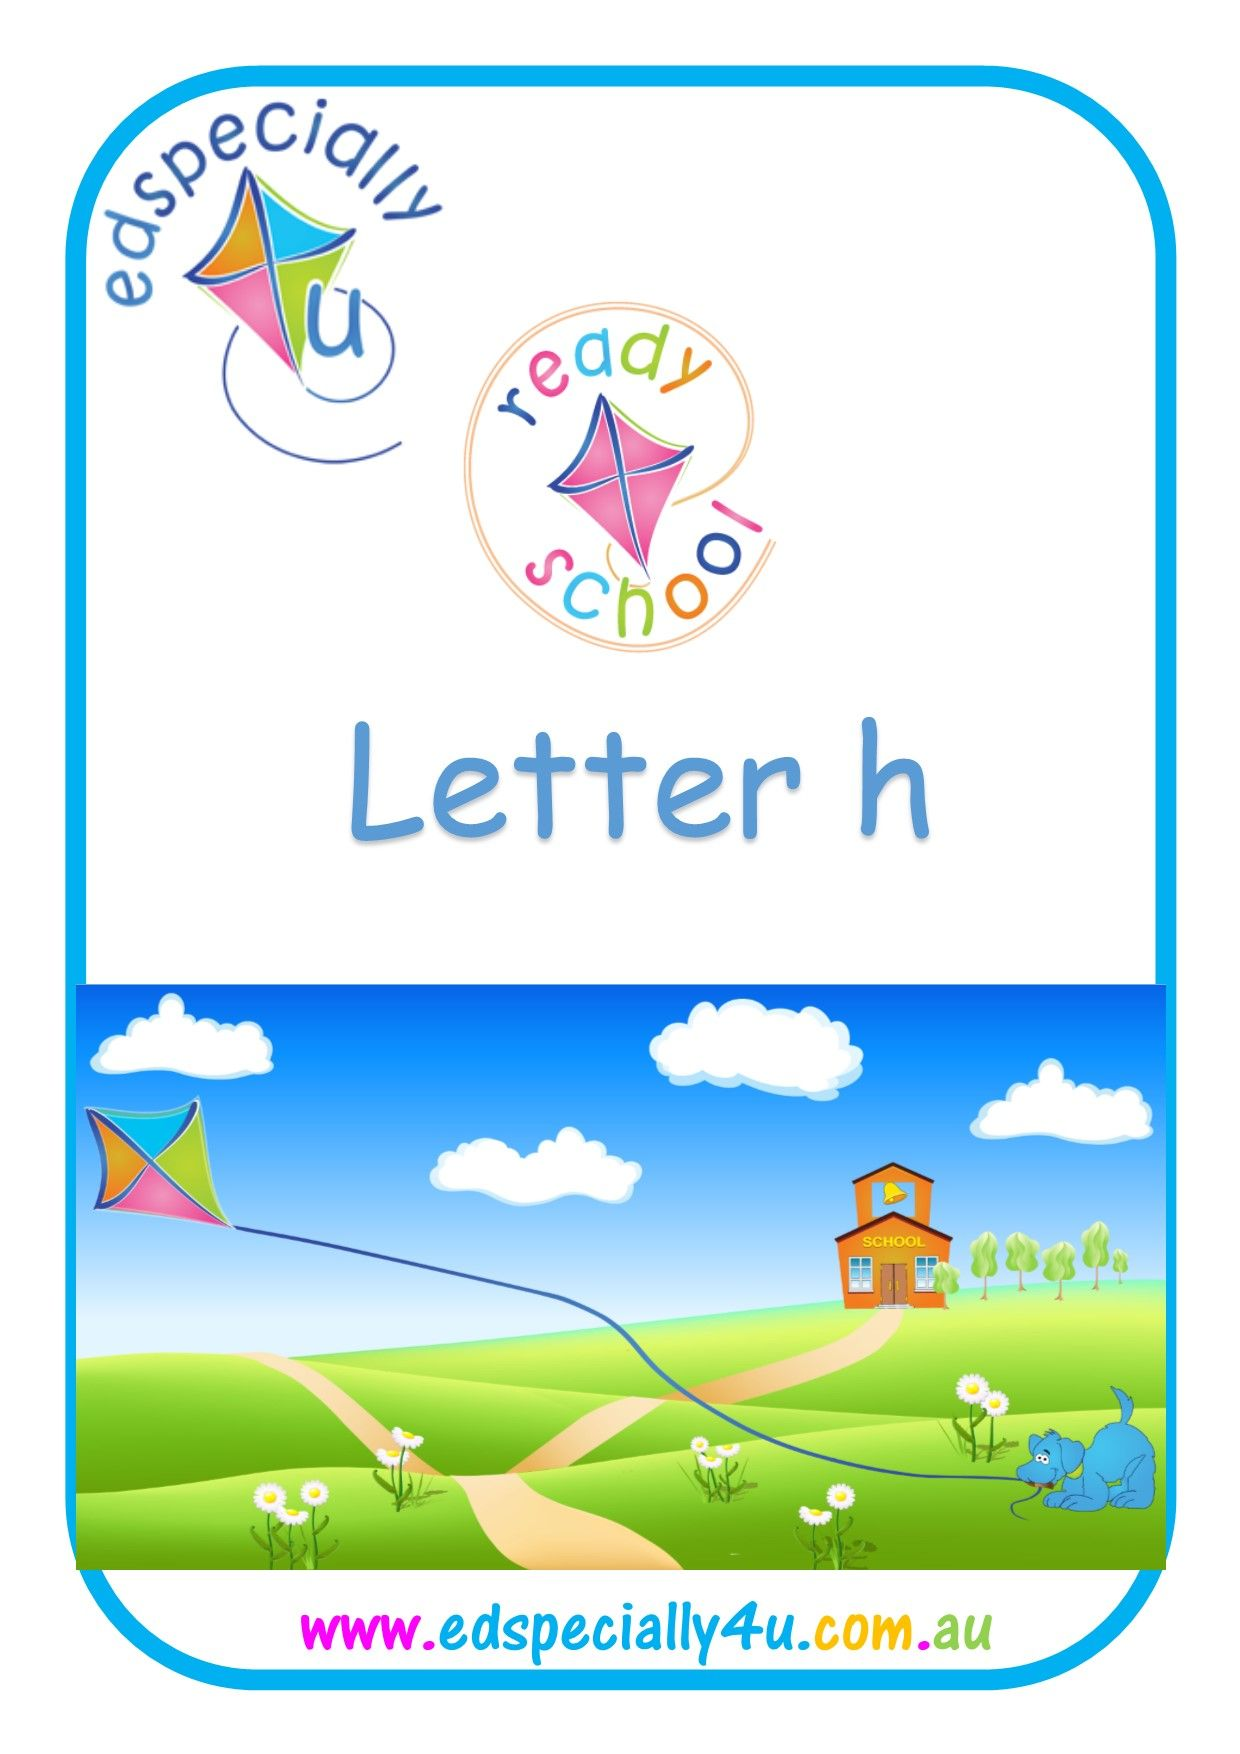 Phonics Programs Image By Ed Specially 4u On Letter H